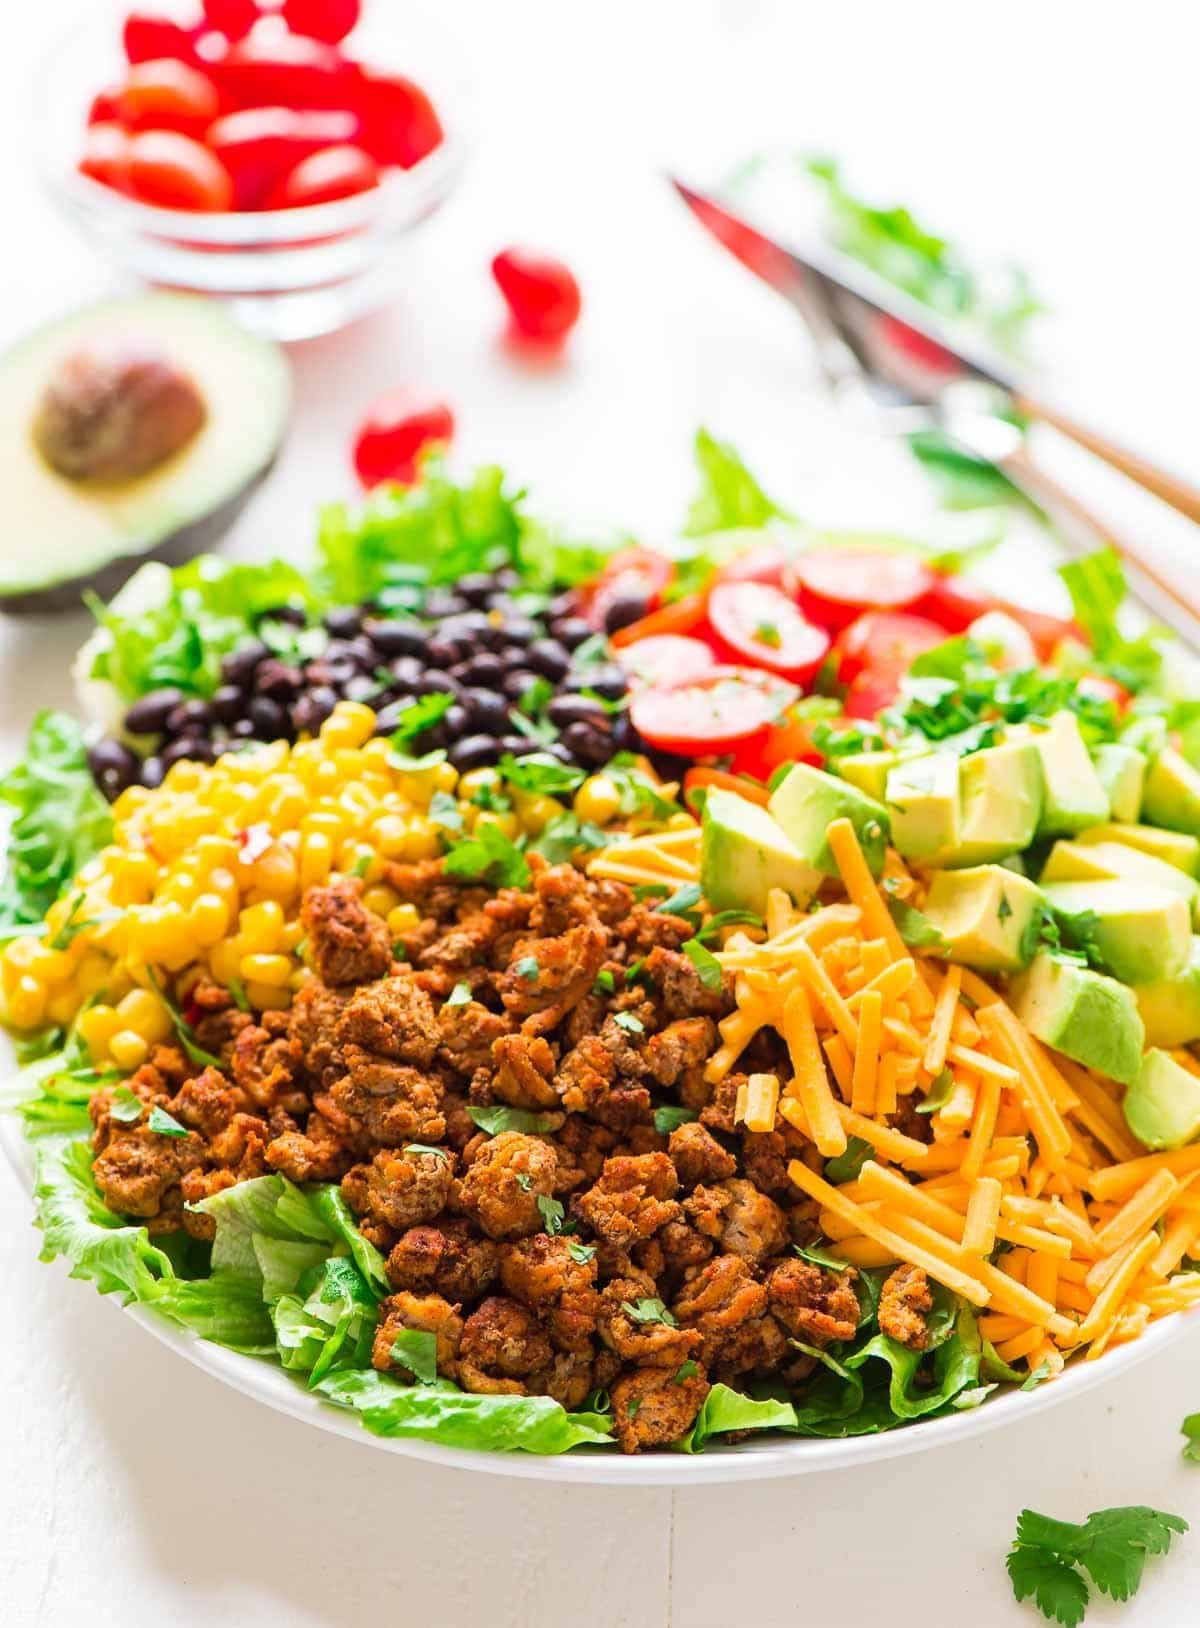 Healthy Turkey Taco Salad  Skinny Taco Salad with Ground Turkey and Avocado